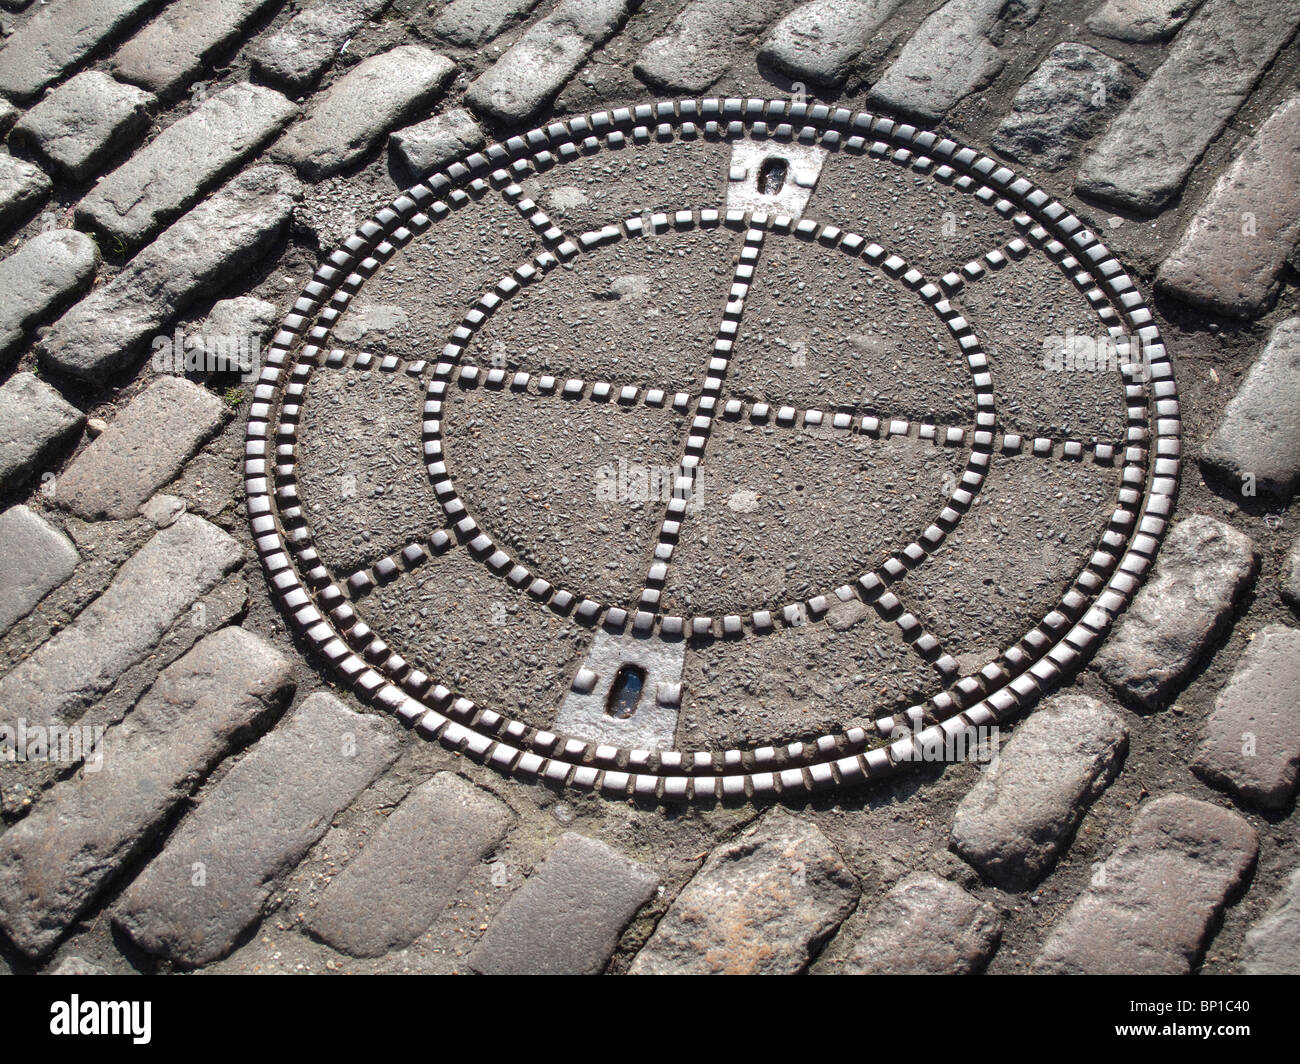 Manhole cover at Tower of London - Stock Image